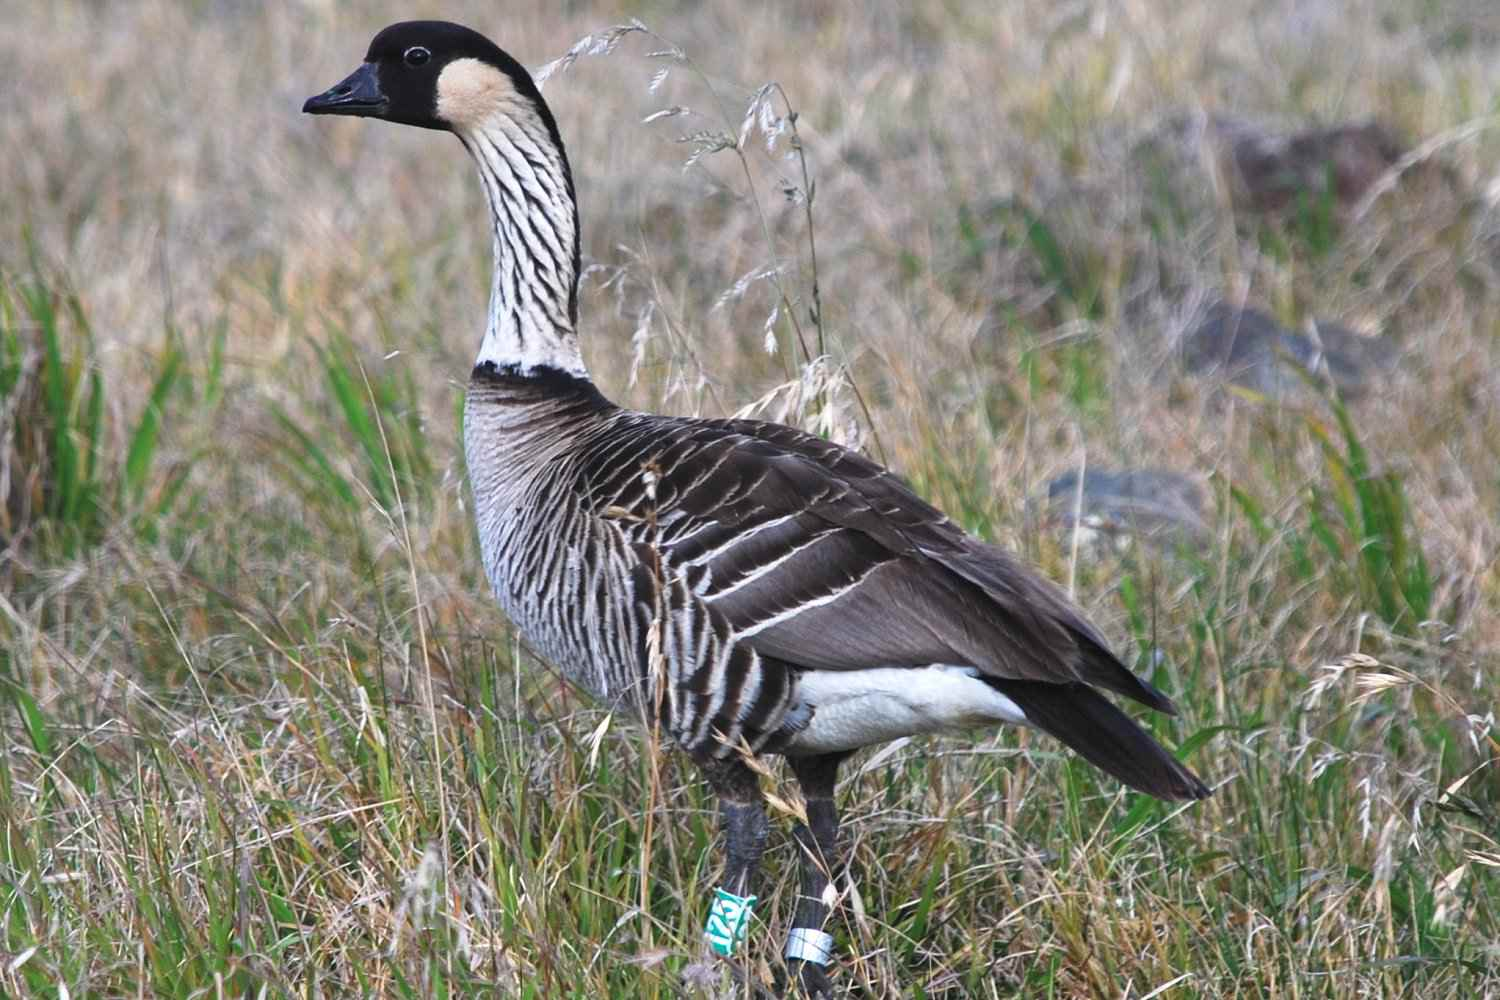 Nene, the state bird of Hawaii, standing in a grassy field.